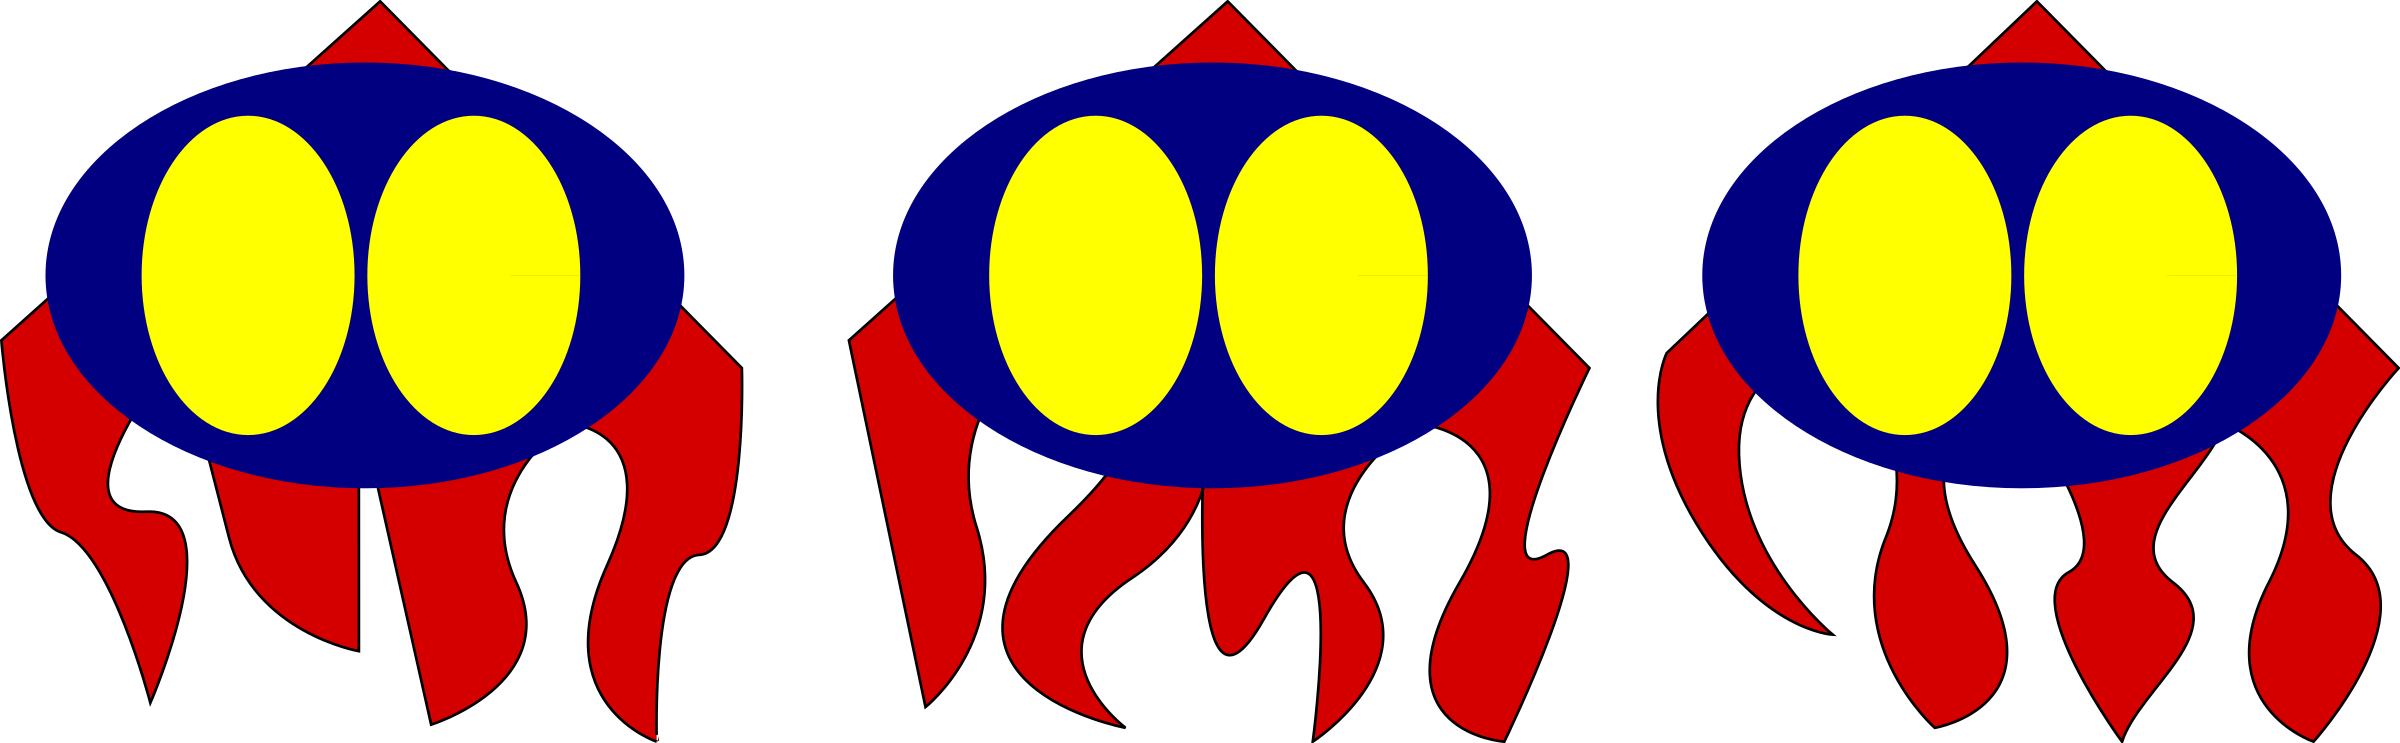 Robot Octopus icon by milker